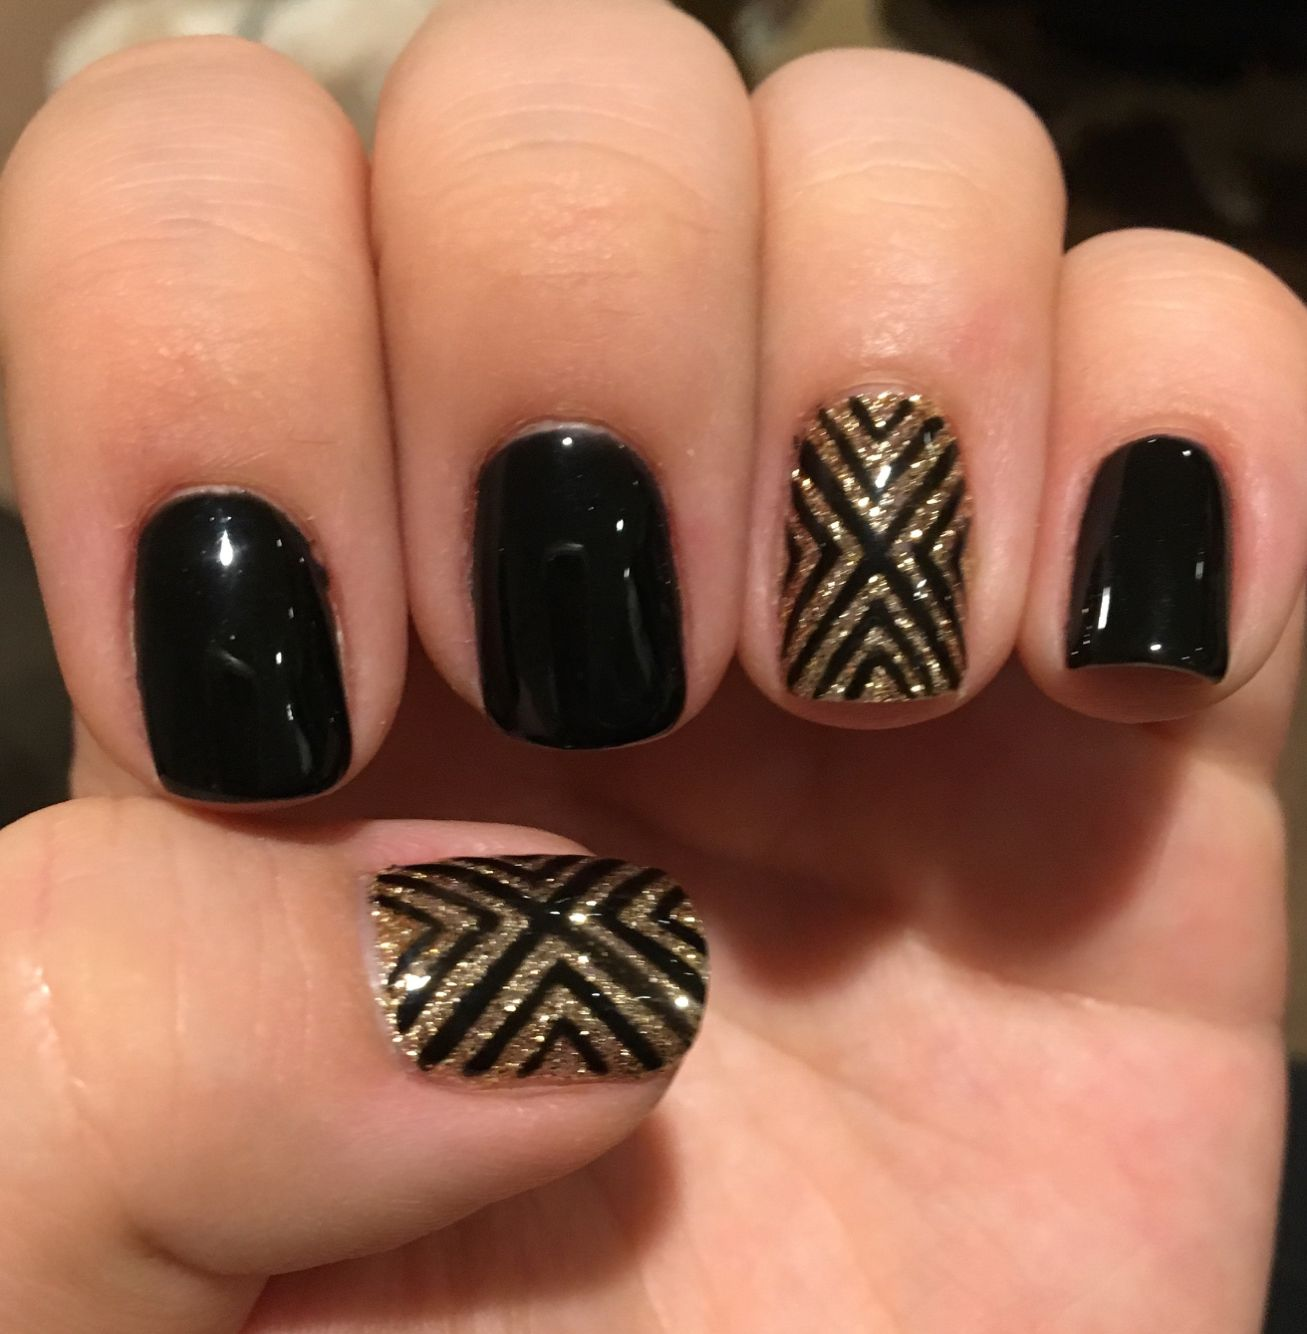 Black & Gold Nails by Andrea @ De La Mer Salon - Black & Gold Nails By Andrea @ De La Mer Salon MiSc Pinterest